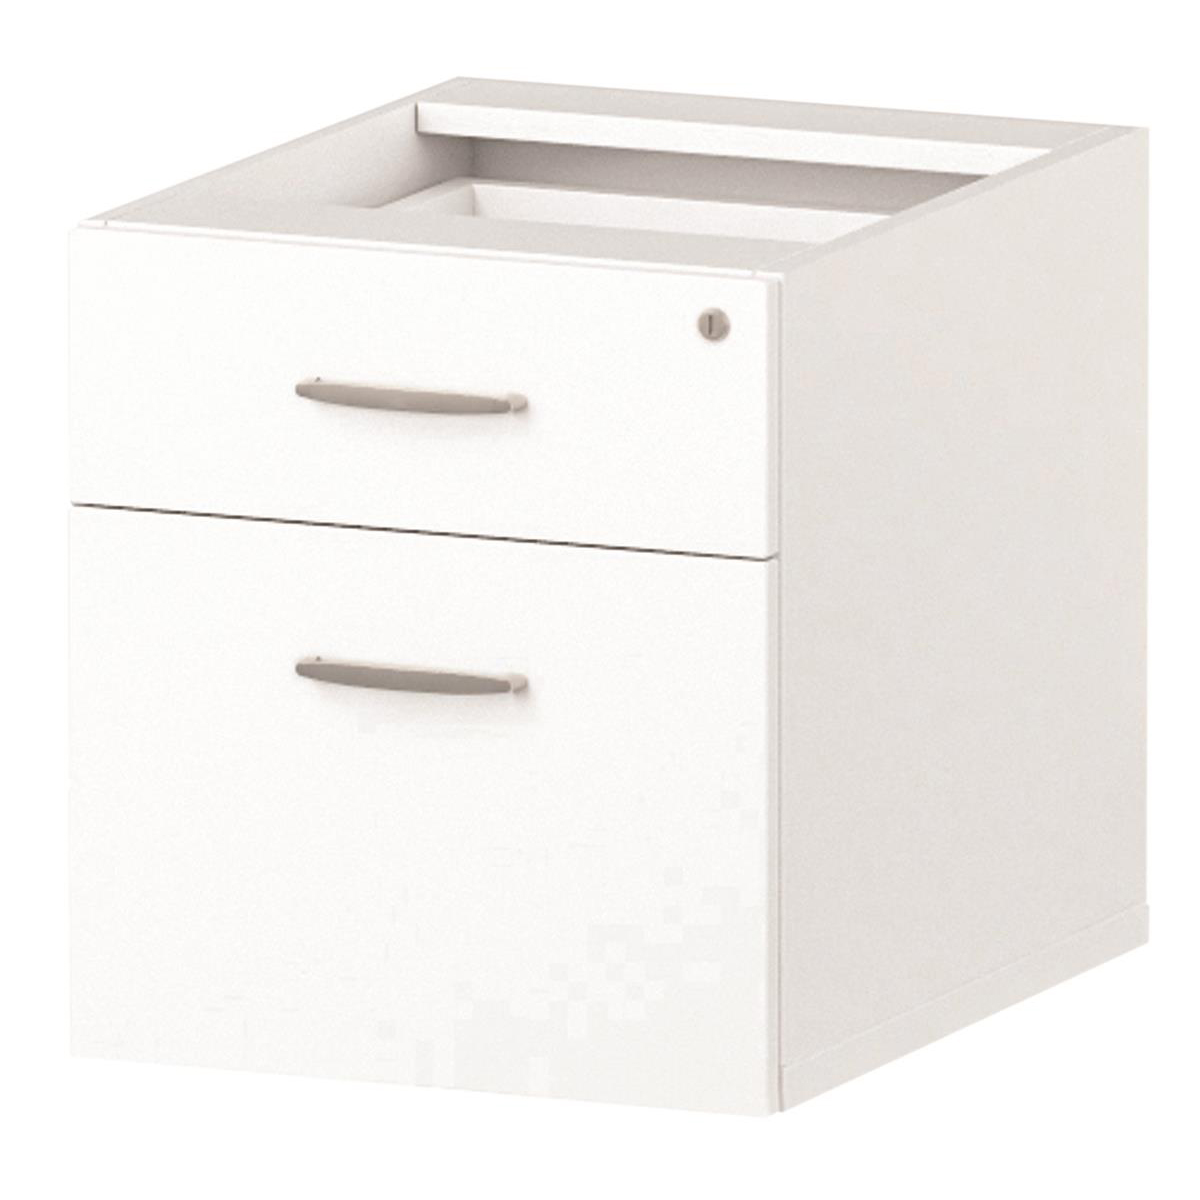 Trexus 2 Drawer Fixed Pedestal 426x463x480mm White Ref I001642